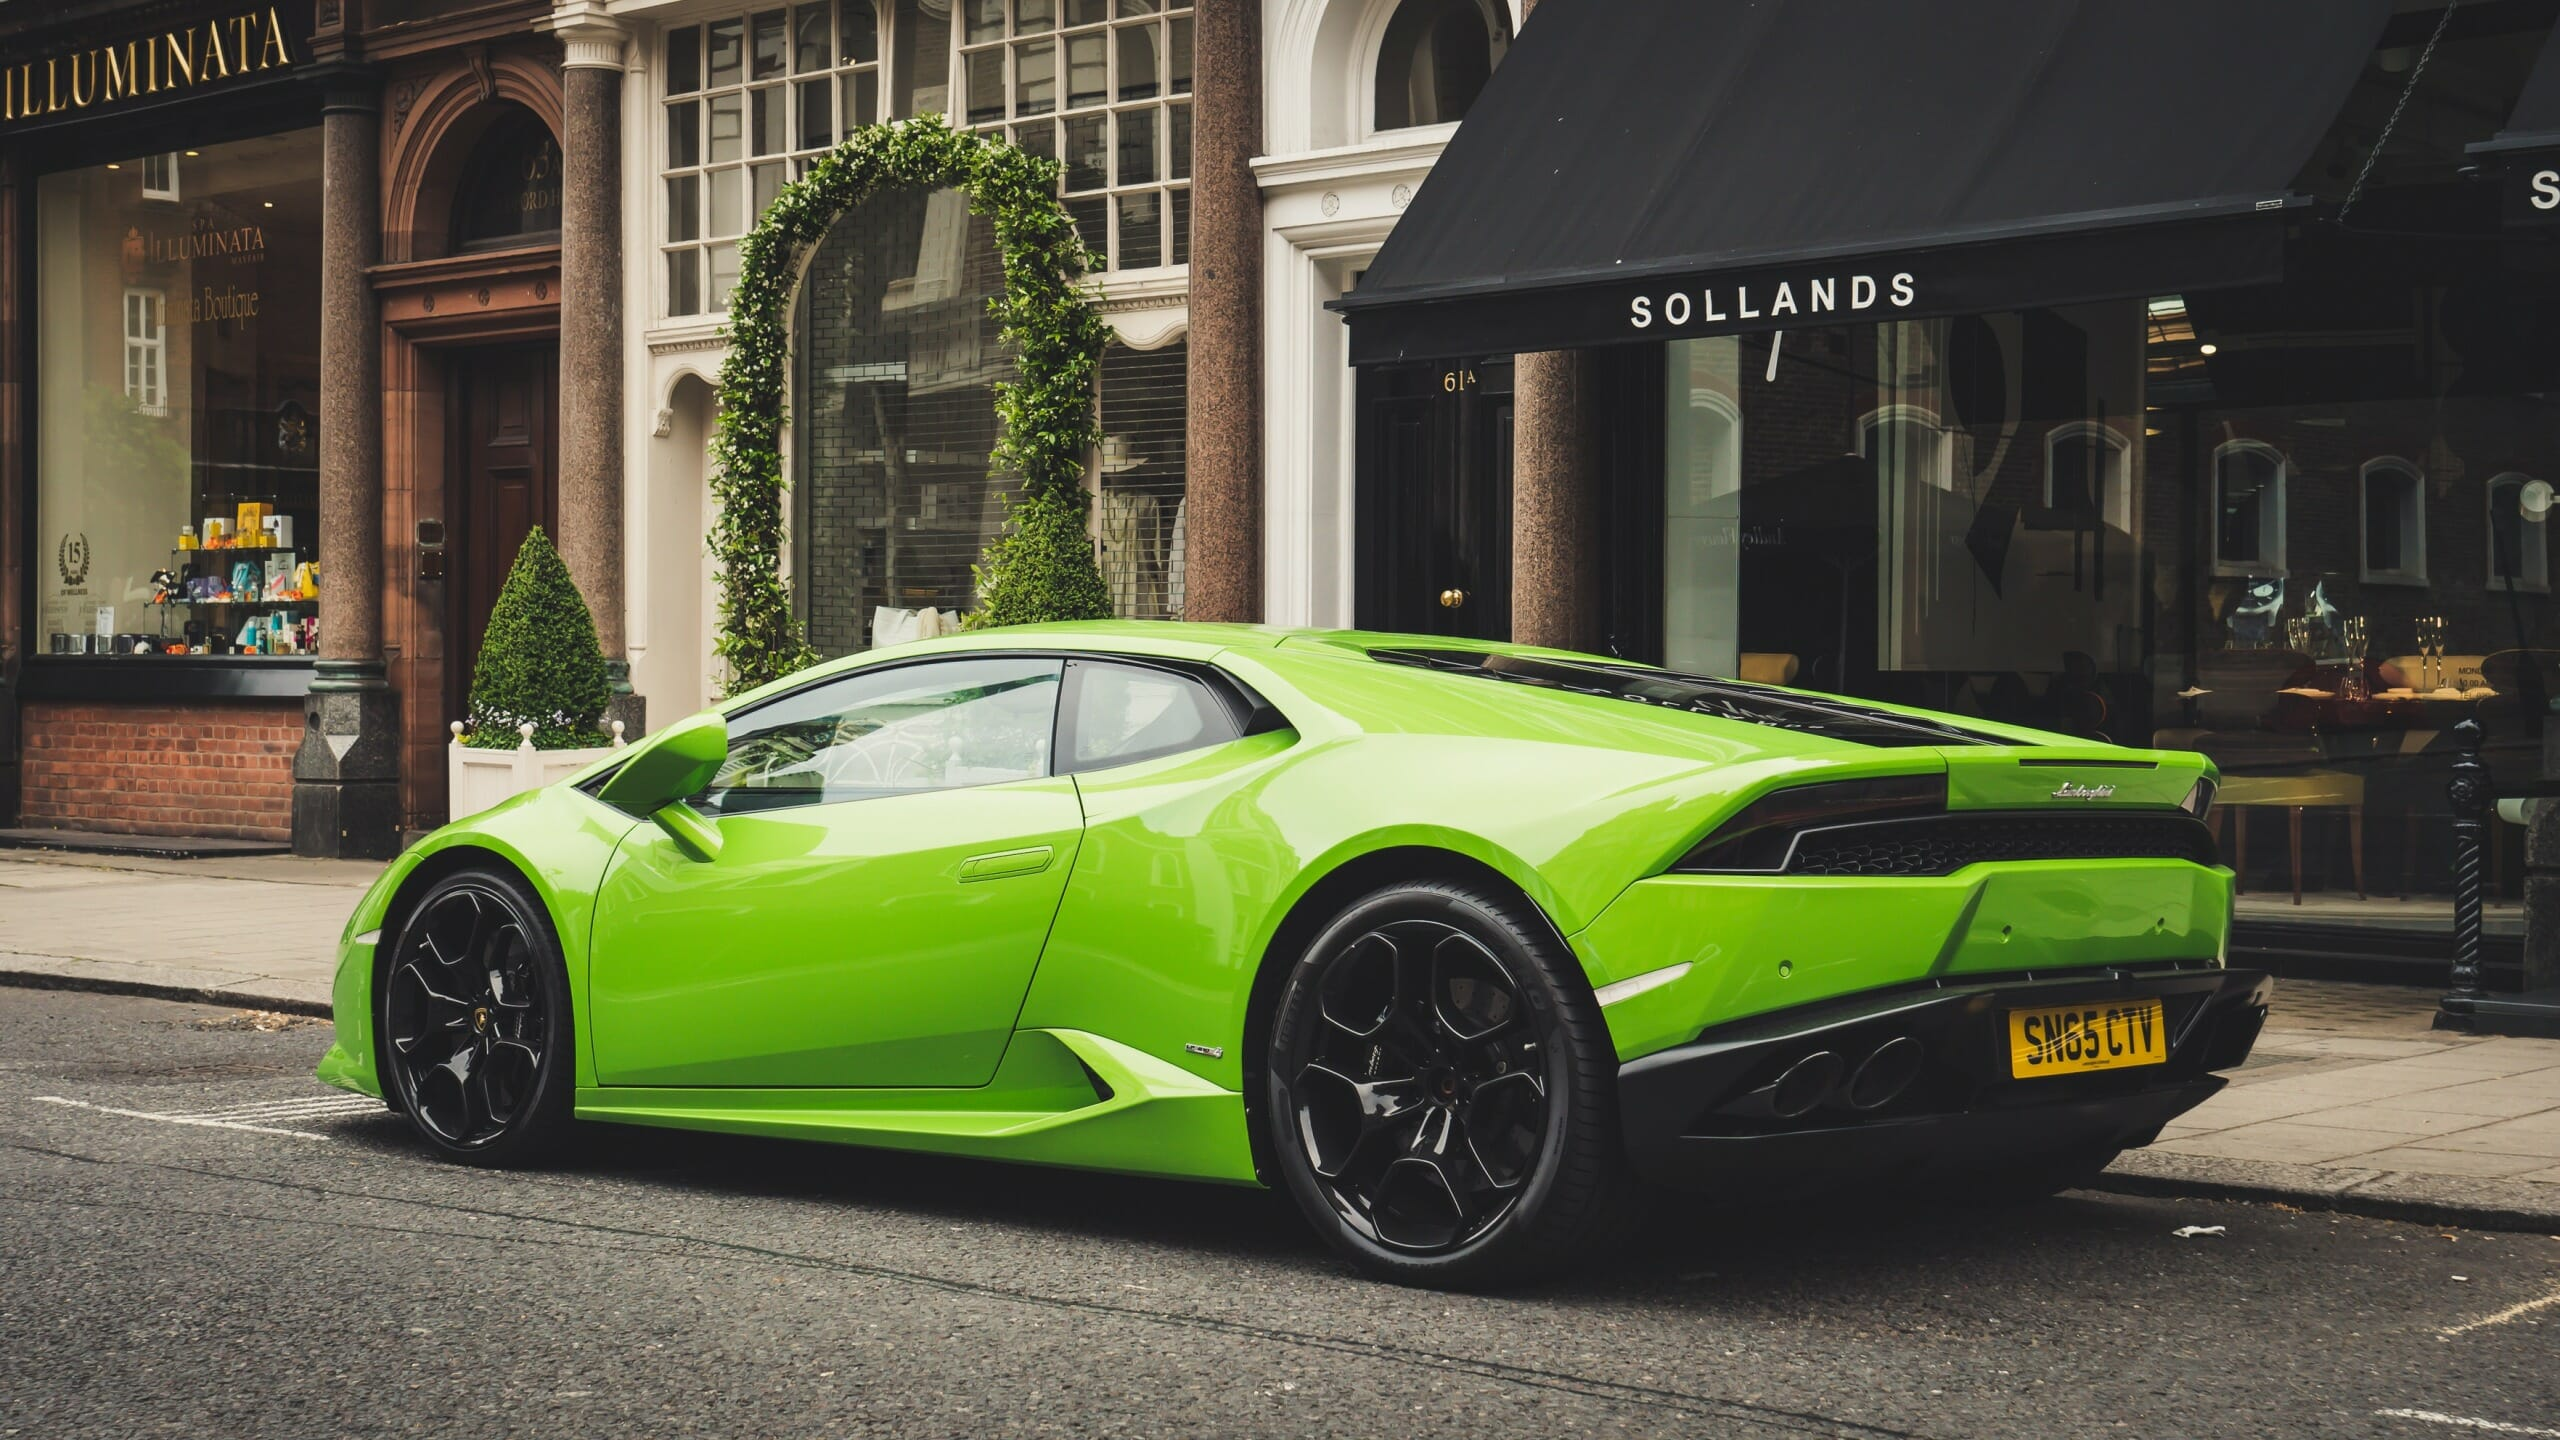 Lamborghini Huracan Is the New Green Beast With 5000L Engine